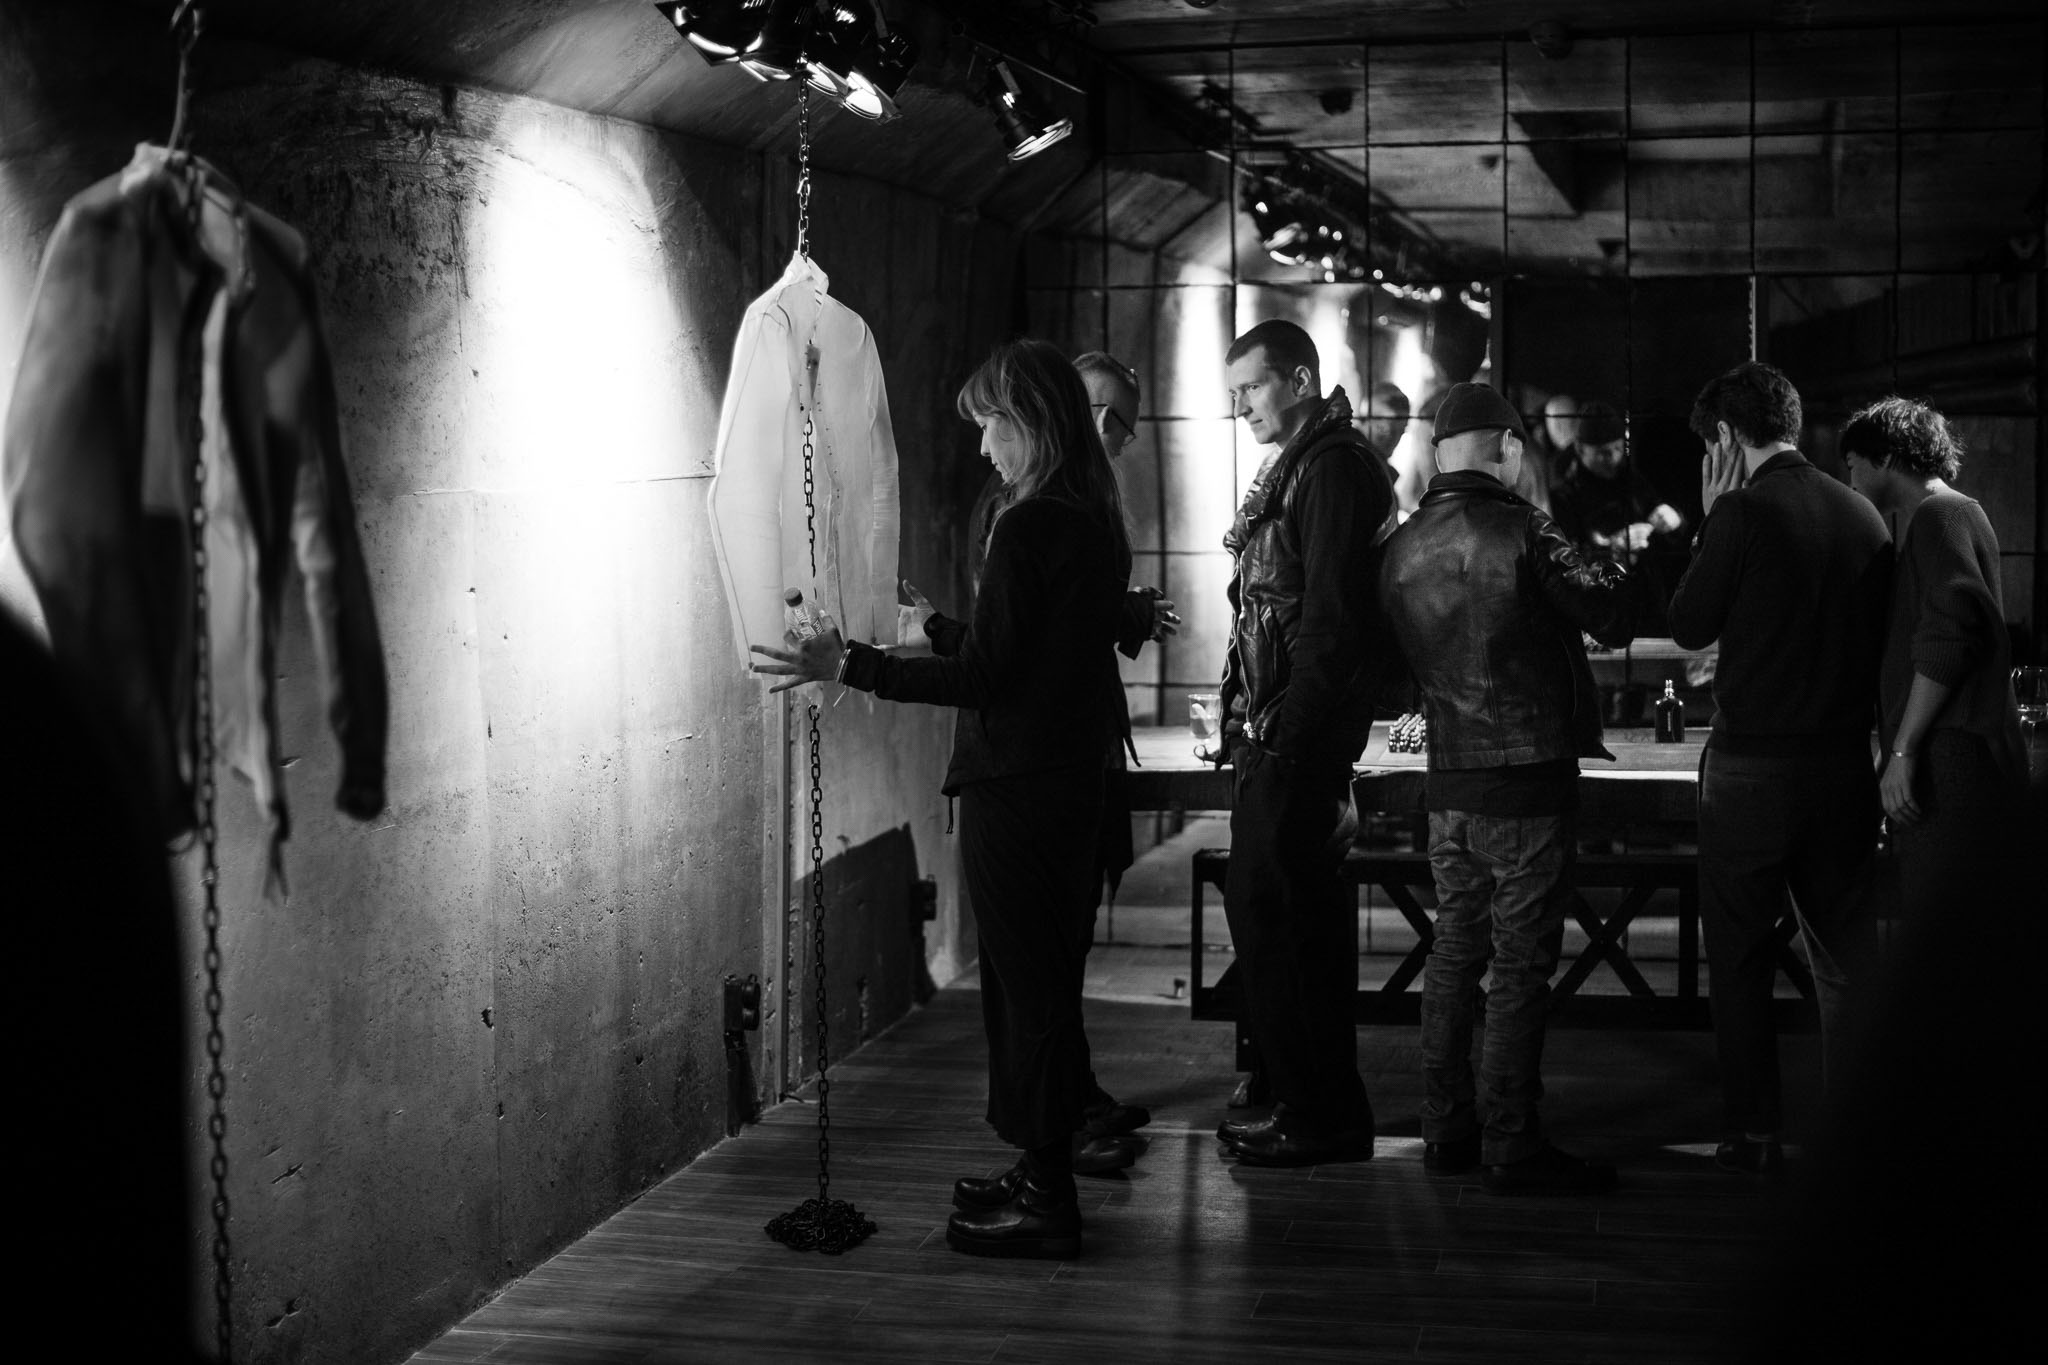 Boris Bidjan Saberi Perfume Launch at Project 3.14 - fashion, events - StyleZeitgeist, Perfume, Fashion, Events, Boris Bidjan Saberi, BBS, 2016